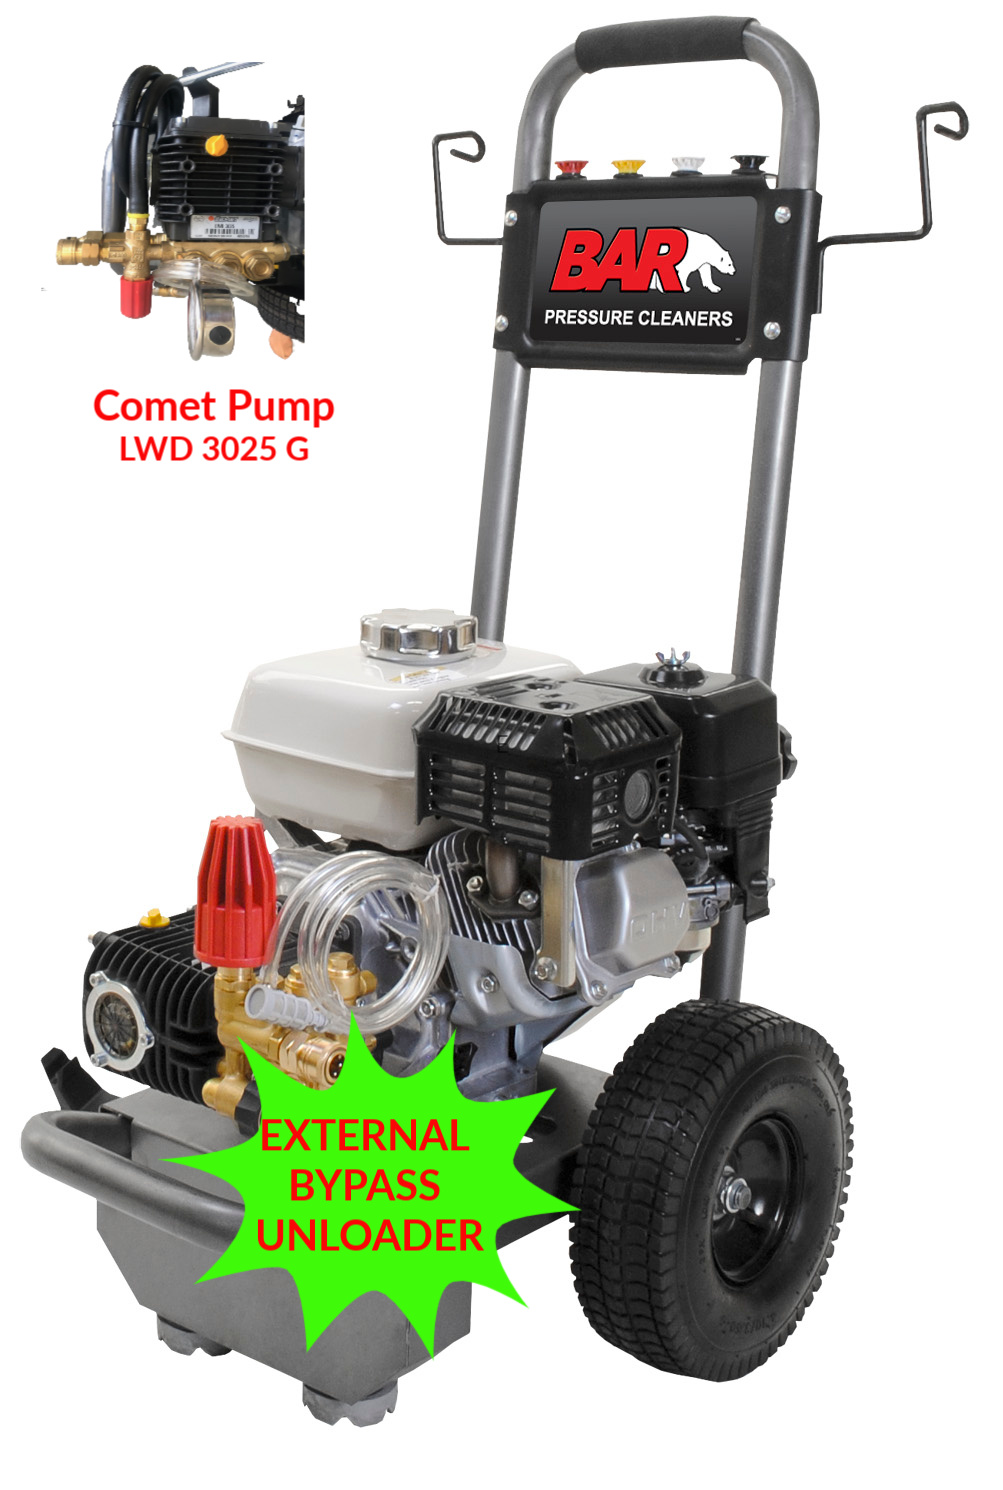 6.5hp Honda GX200 High Pressure Washer | Recoil Start | COMET Pump | With EXTERNAL Pressure Adjustable Bypass Unloader